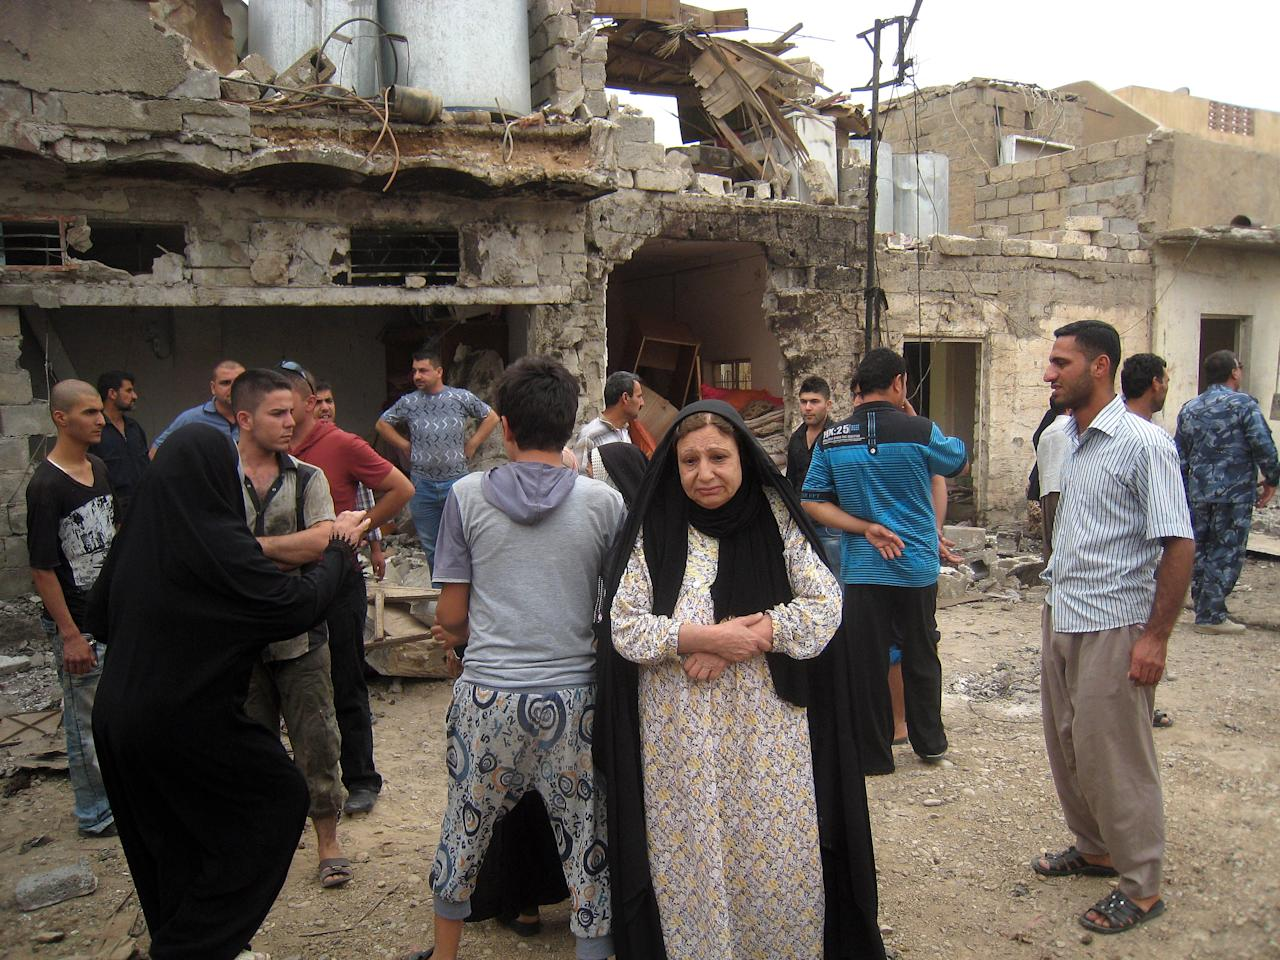 Residents react to a car bomb attack in Kirkuk, 180 miles (290 kilometers) north of Baghdad, Iraq, Wednesday, May 15, 2013. Two car bombs struck a disputed northern Iraqi city on Wednesday as a series of attacks across the country, killing and wounding dozens of people, police said. (AP Photo/Emad Matti)